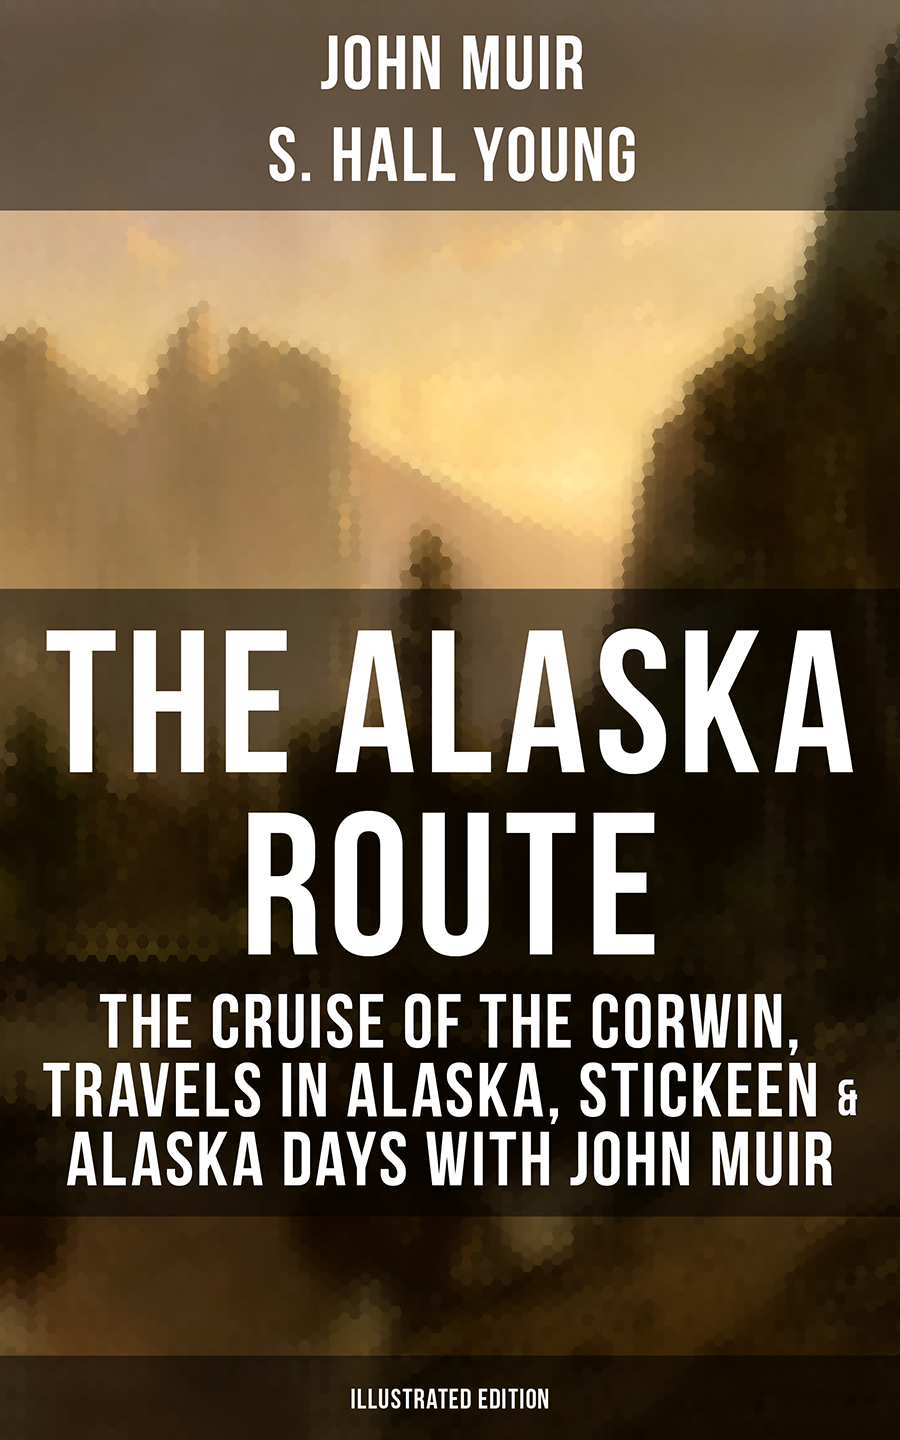 John Muir THE ALASKA ROUTE: The Cruise of the Corwin, Travels in Alaska, Stickeen & Alaska Days with John Muir (Illustrated Edition) alaska group 18 5